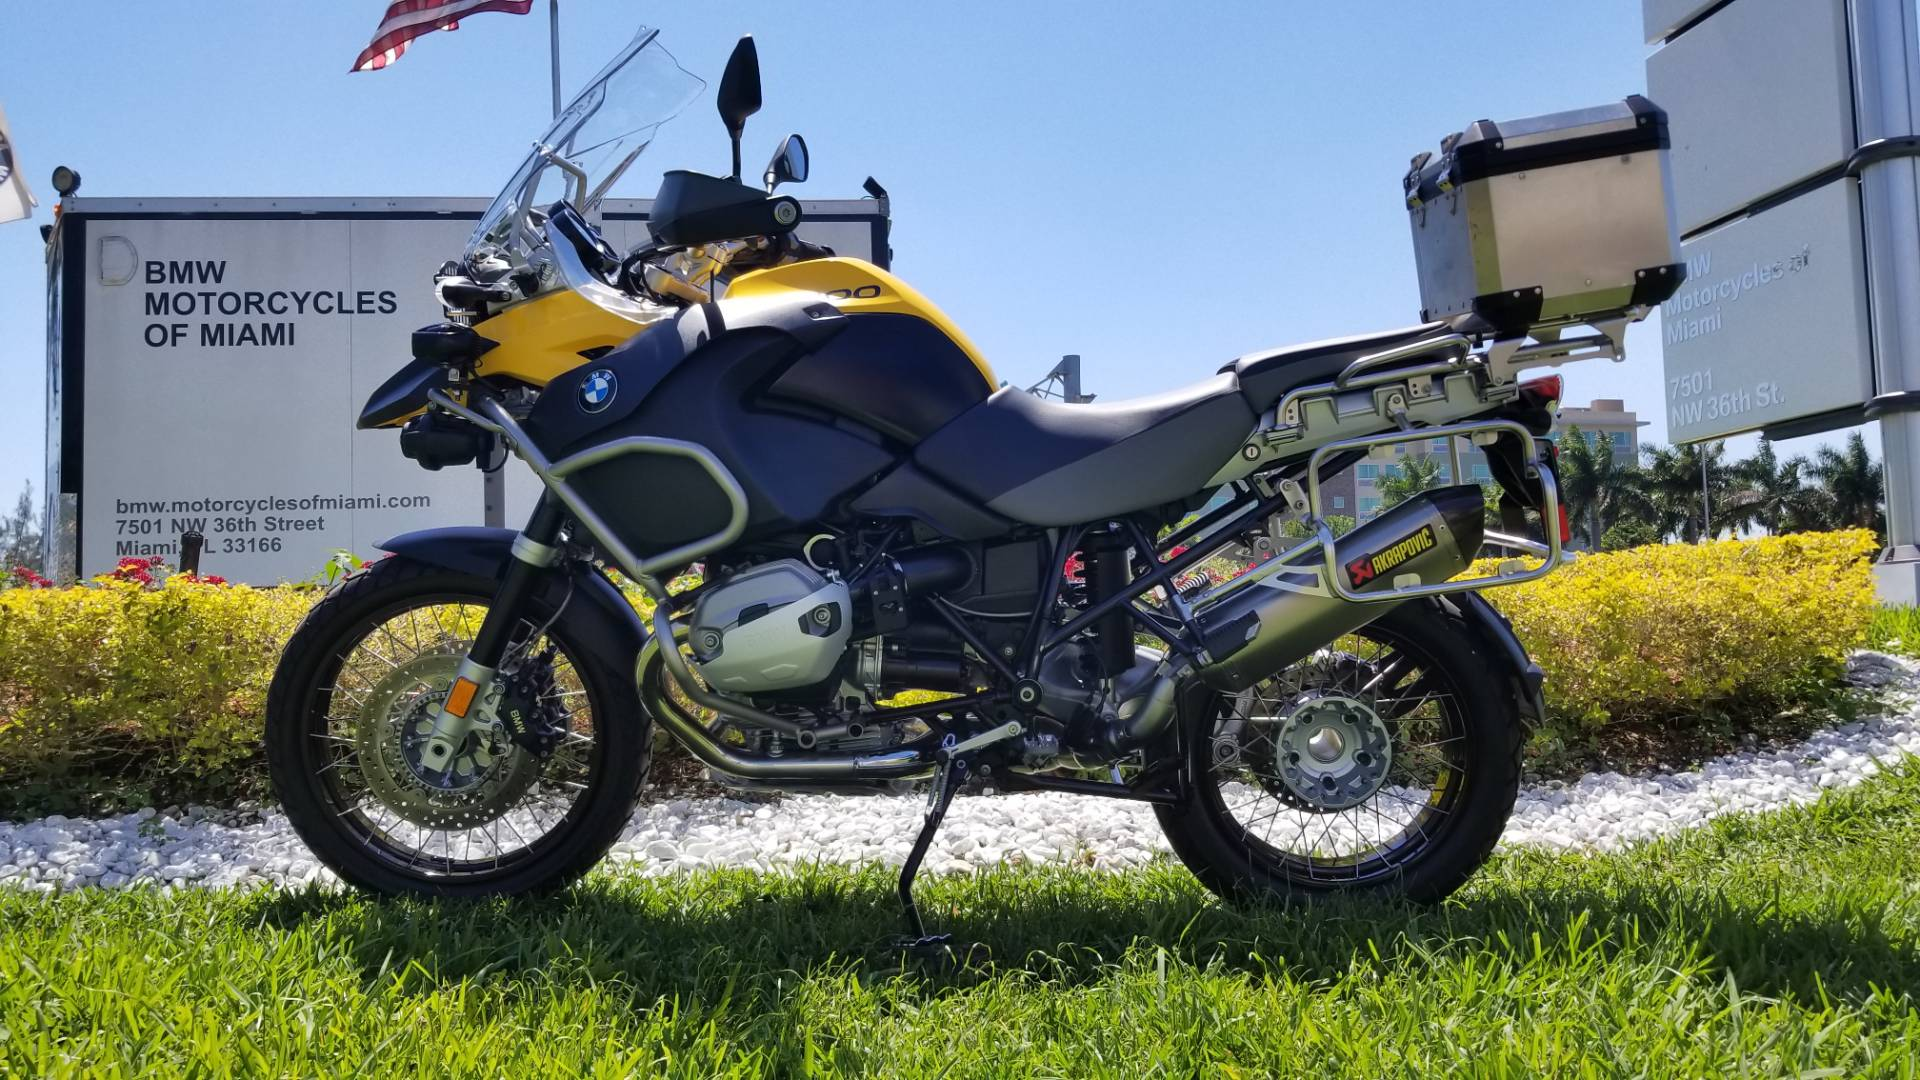 Used 2011 BMW R 1200 GSA For Sale, Pre owned BMW R 1200GSA For Sale, BMW Motorcycle R1200GSA, BMW Motorcycles of Miami, Motorcycles of Miami, Motorcycles Miami - Photo 8